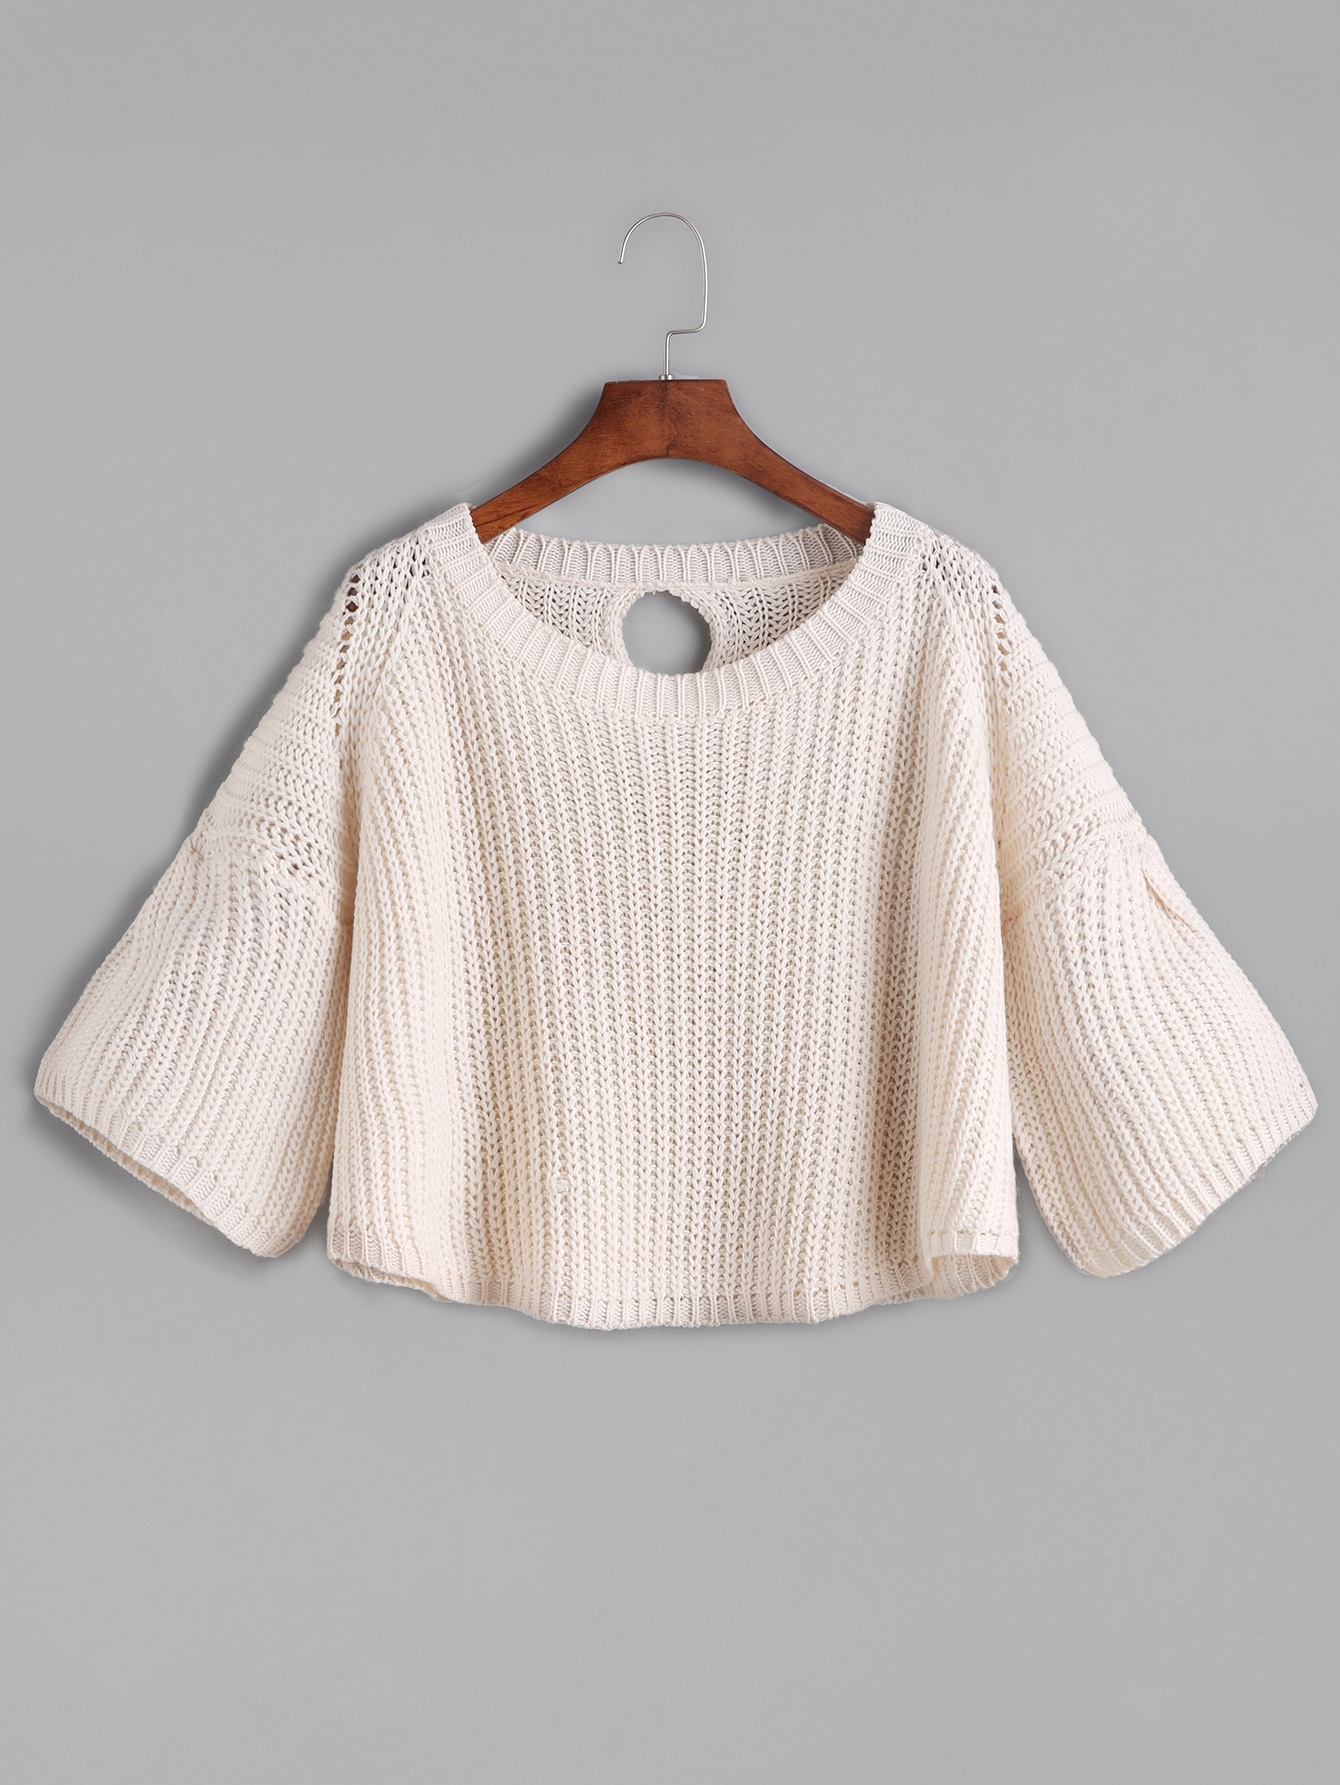 Apricot Ribbed Knit Keyhole Back Bell Sleeve Crop Sweater sweater160920469